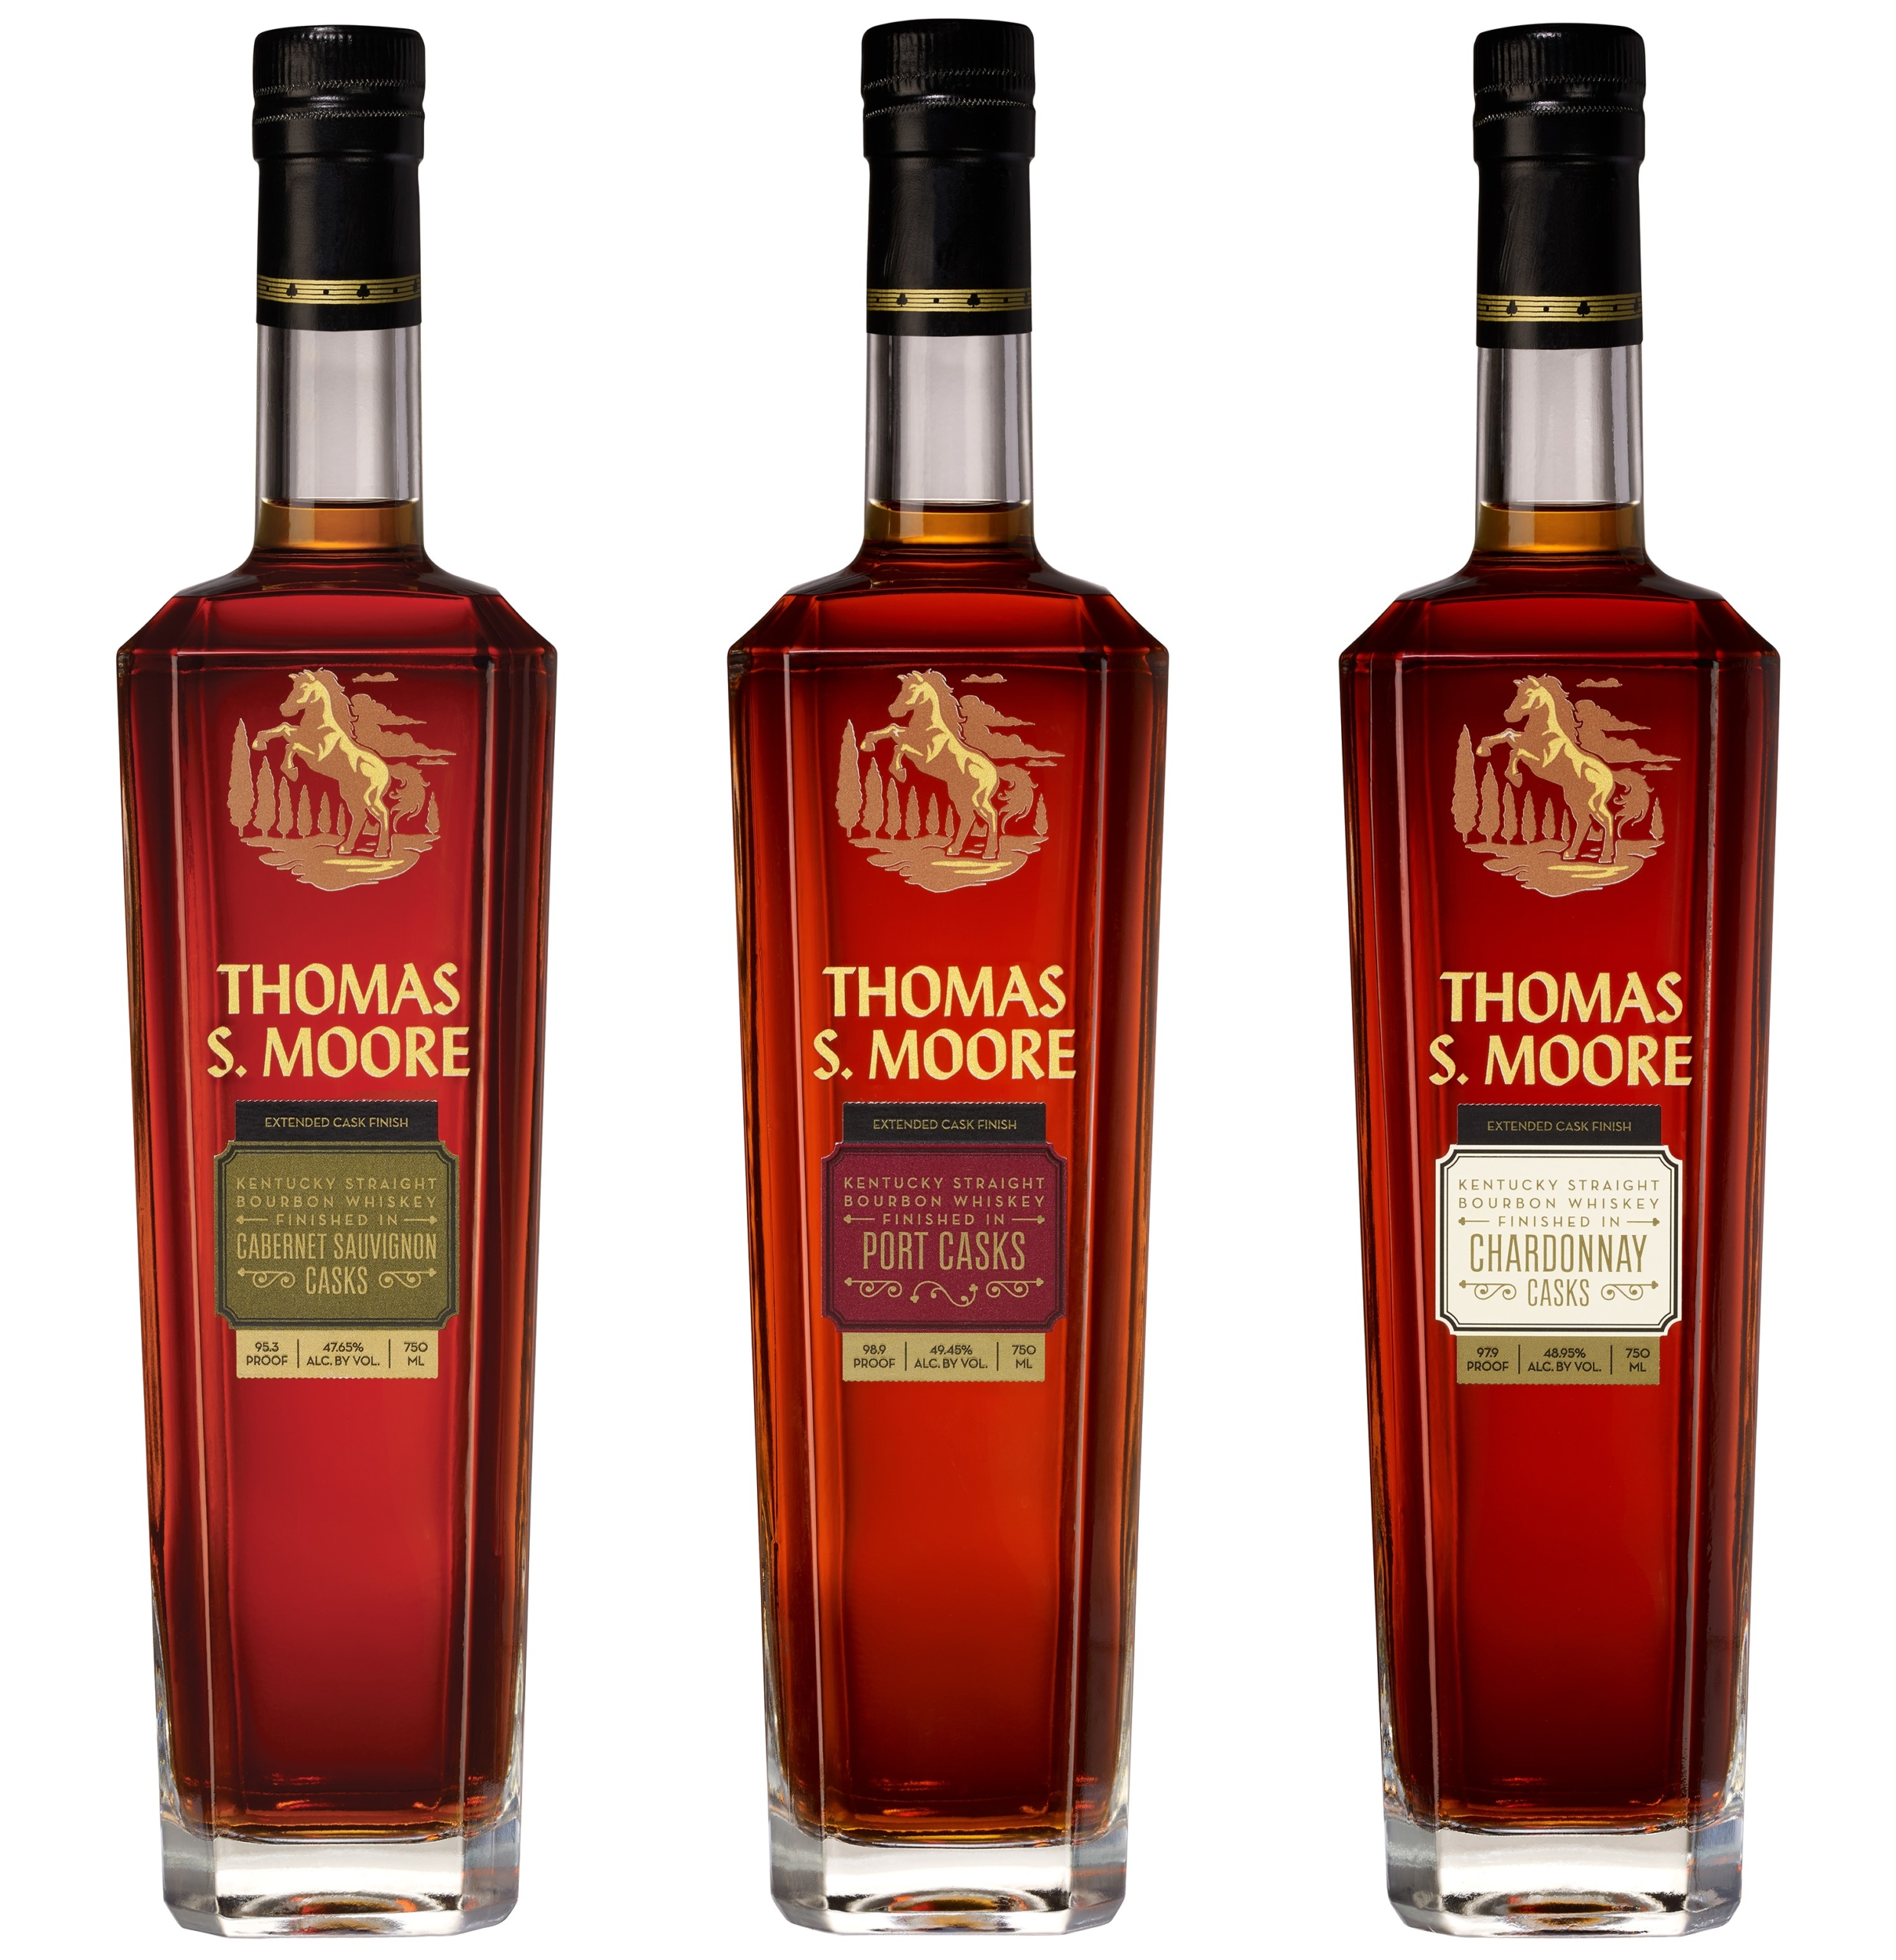 BARTON 1792 DISTILLERY UNVEILS ITS NEW THOMAS S. MOORE BRAND OF CASK FINISHED BOURBON WHISKEYS